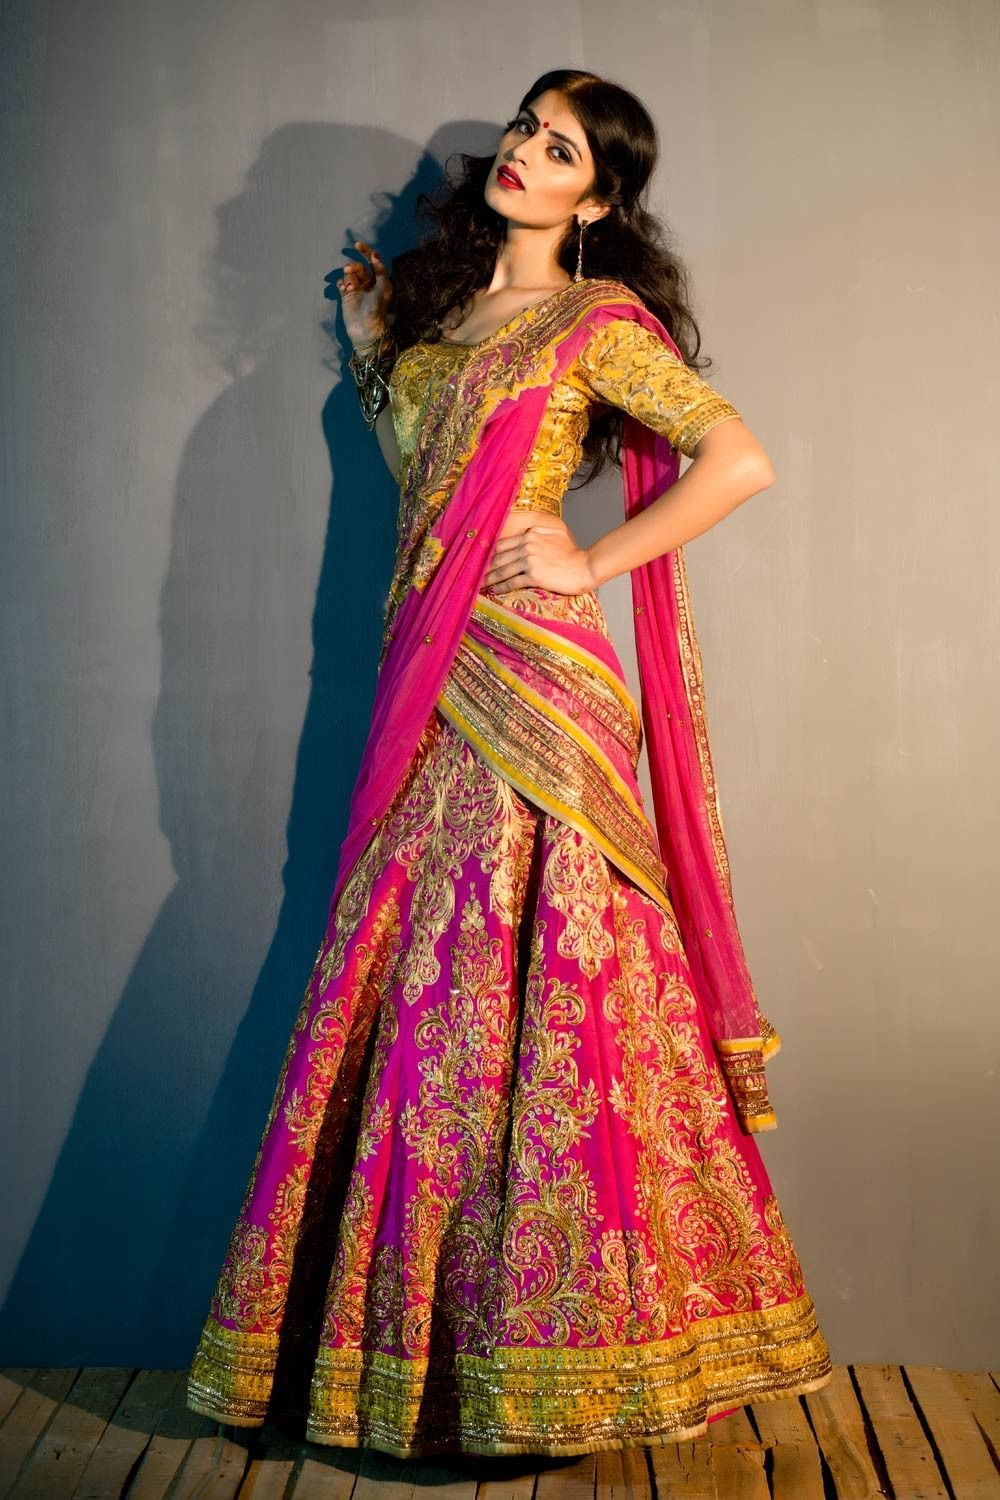 5faf7fd1be #TrendOfTheWeek : Beautiful Bridal Lehengas for Your Big Day  #IndianBridalLehengas #BridalLehengas #SouthIndianBridalLehengas #Lehengas  ...